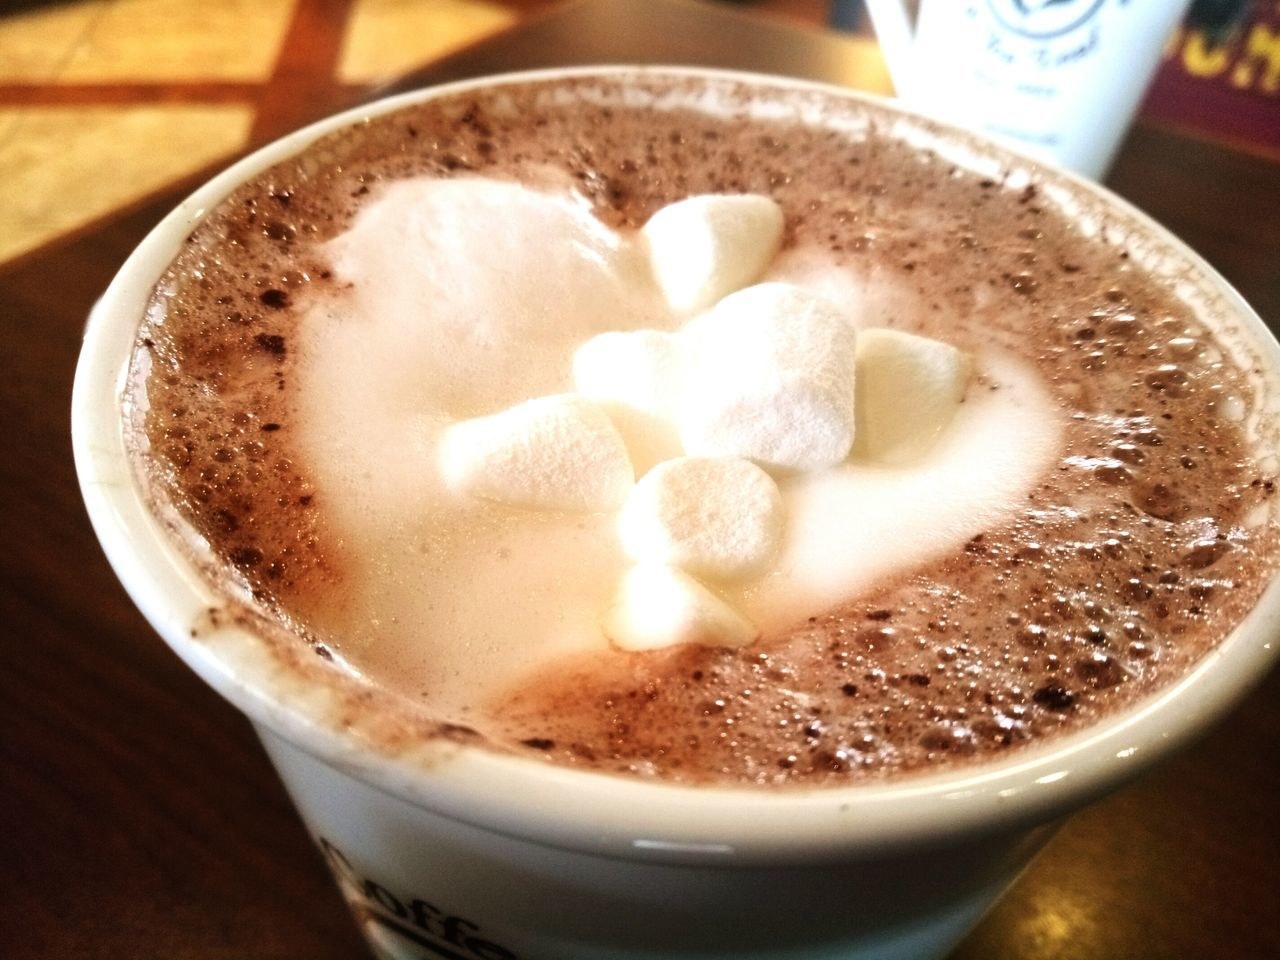 coffee - drink, drink, coffee cup, frothy drink, food and drink, refreshment, table, froth, cappuccino, indoors, freshness, foam, close-up, froth art, no people, latte, disposable cup, hot chocolate, mocha, day